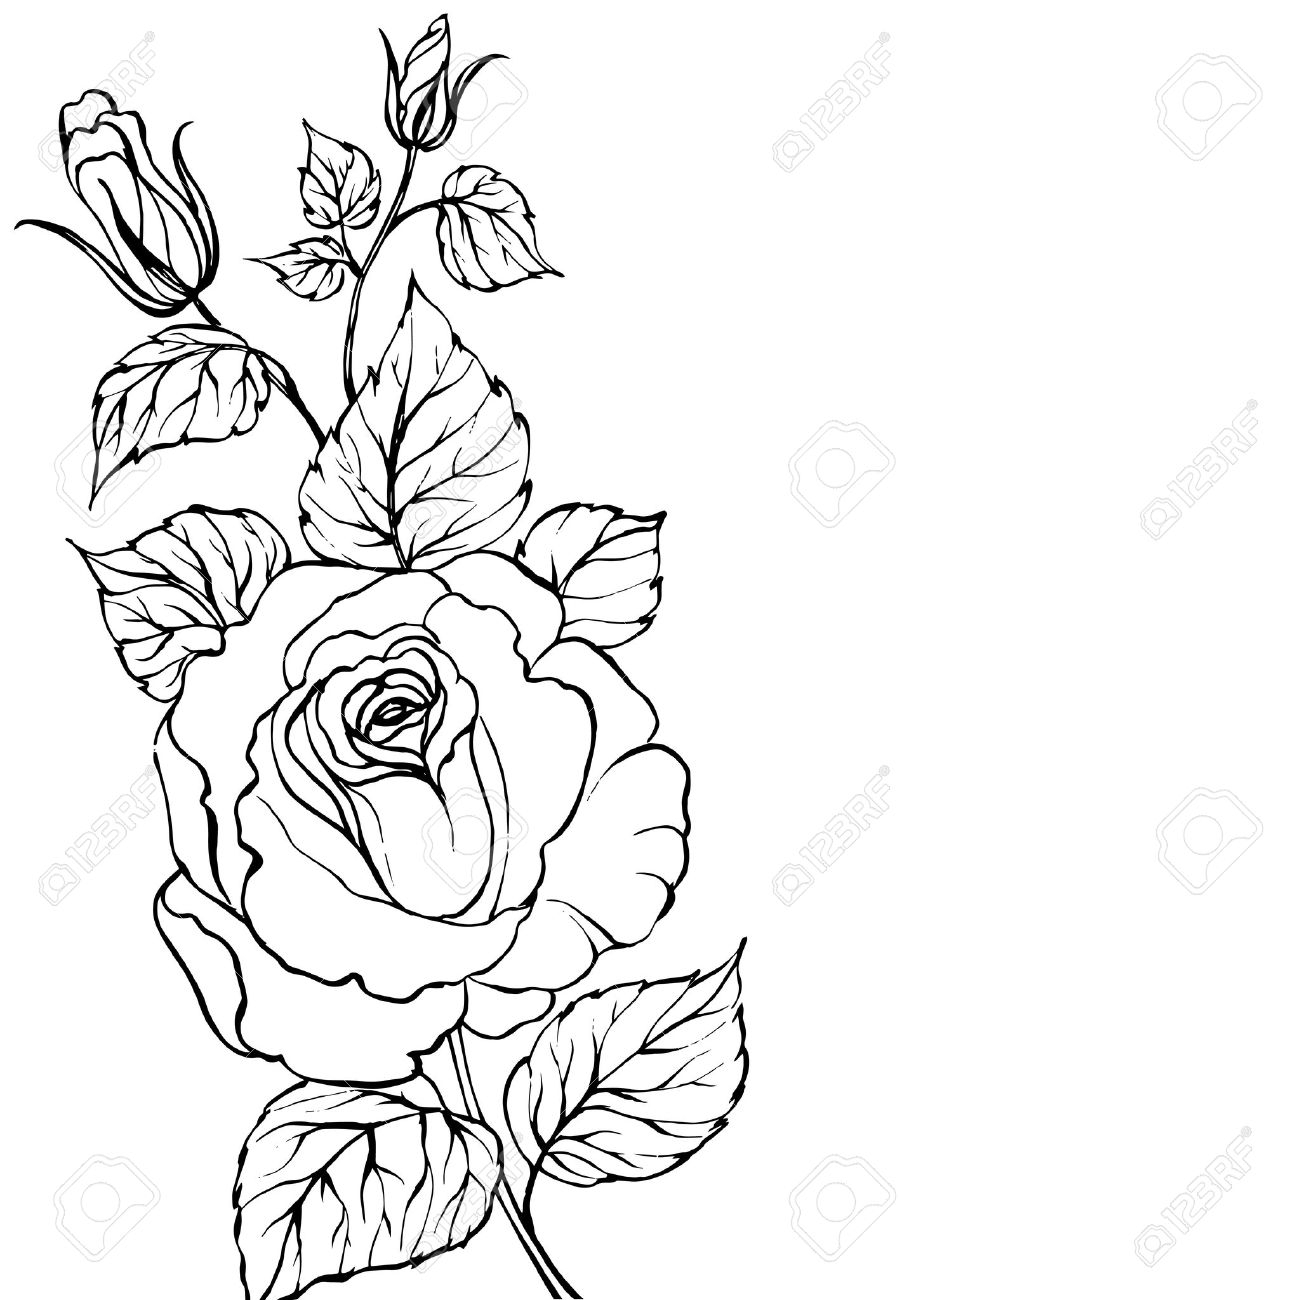 1300x1300 Rose Flower Outline Drawing Rose Tattoos Outline